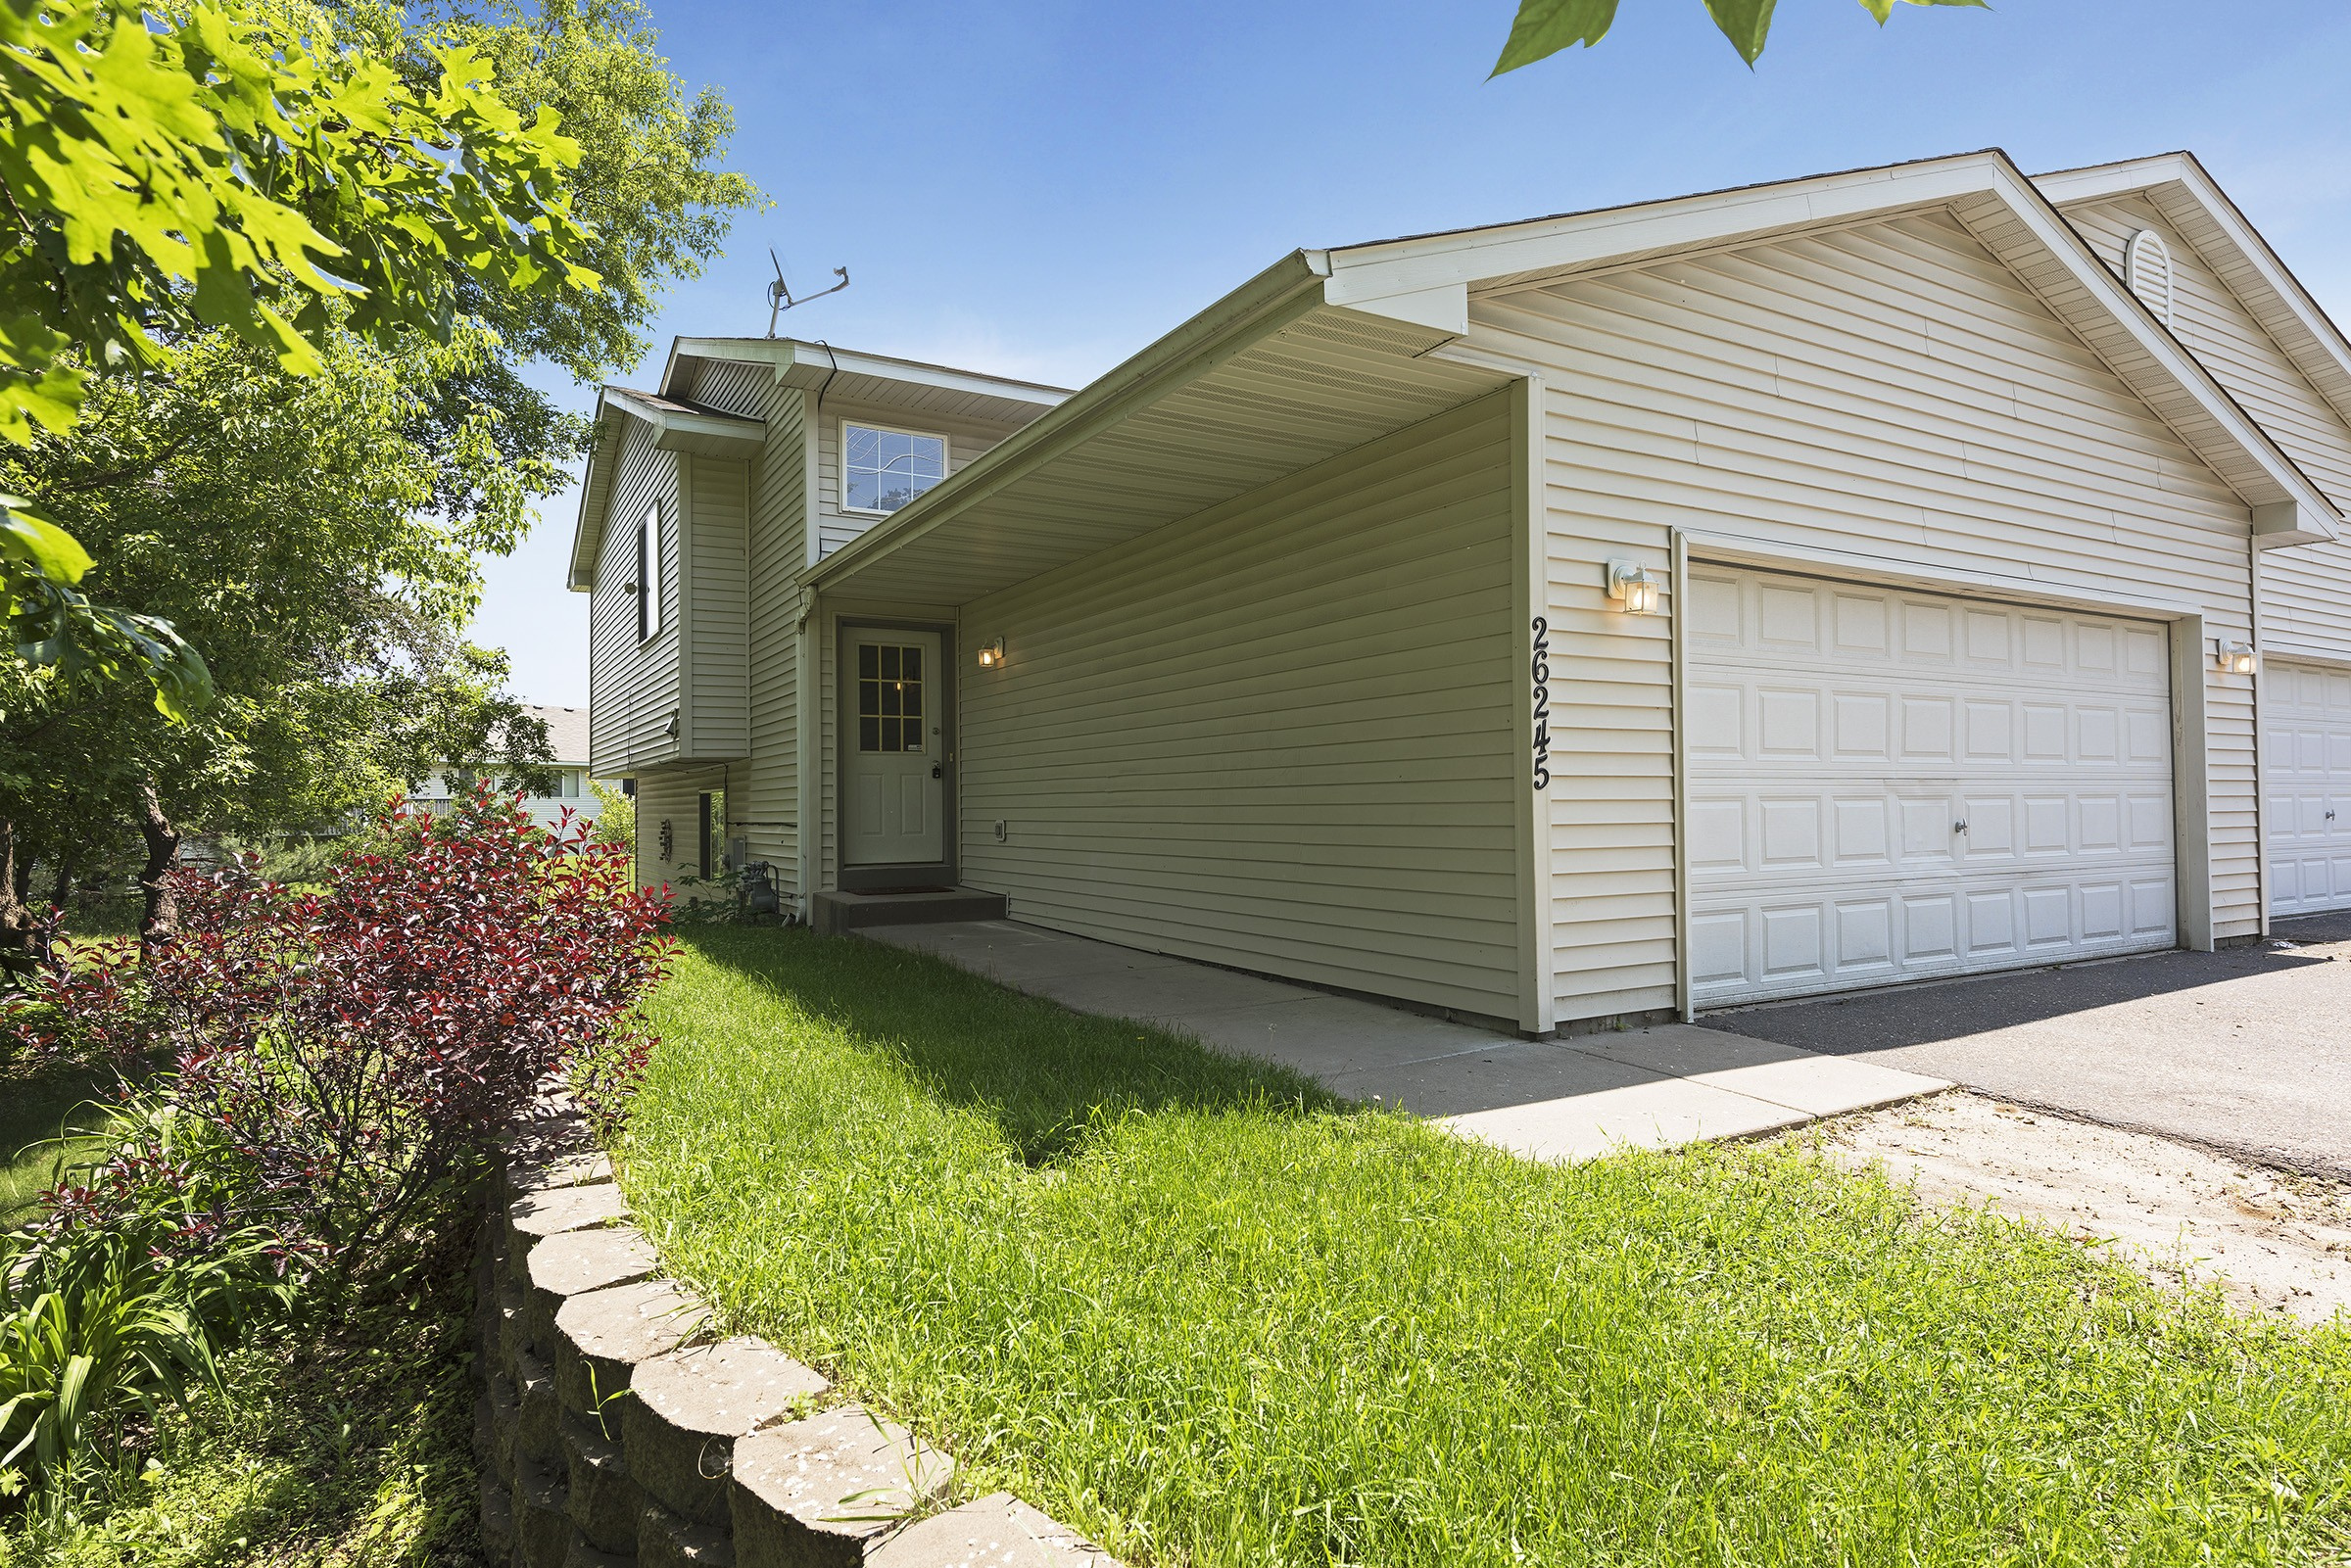 JUST LISTED- 3bd/2ba Twin Home in Zimmerman!! $129,900